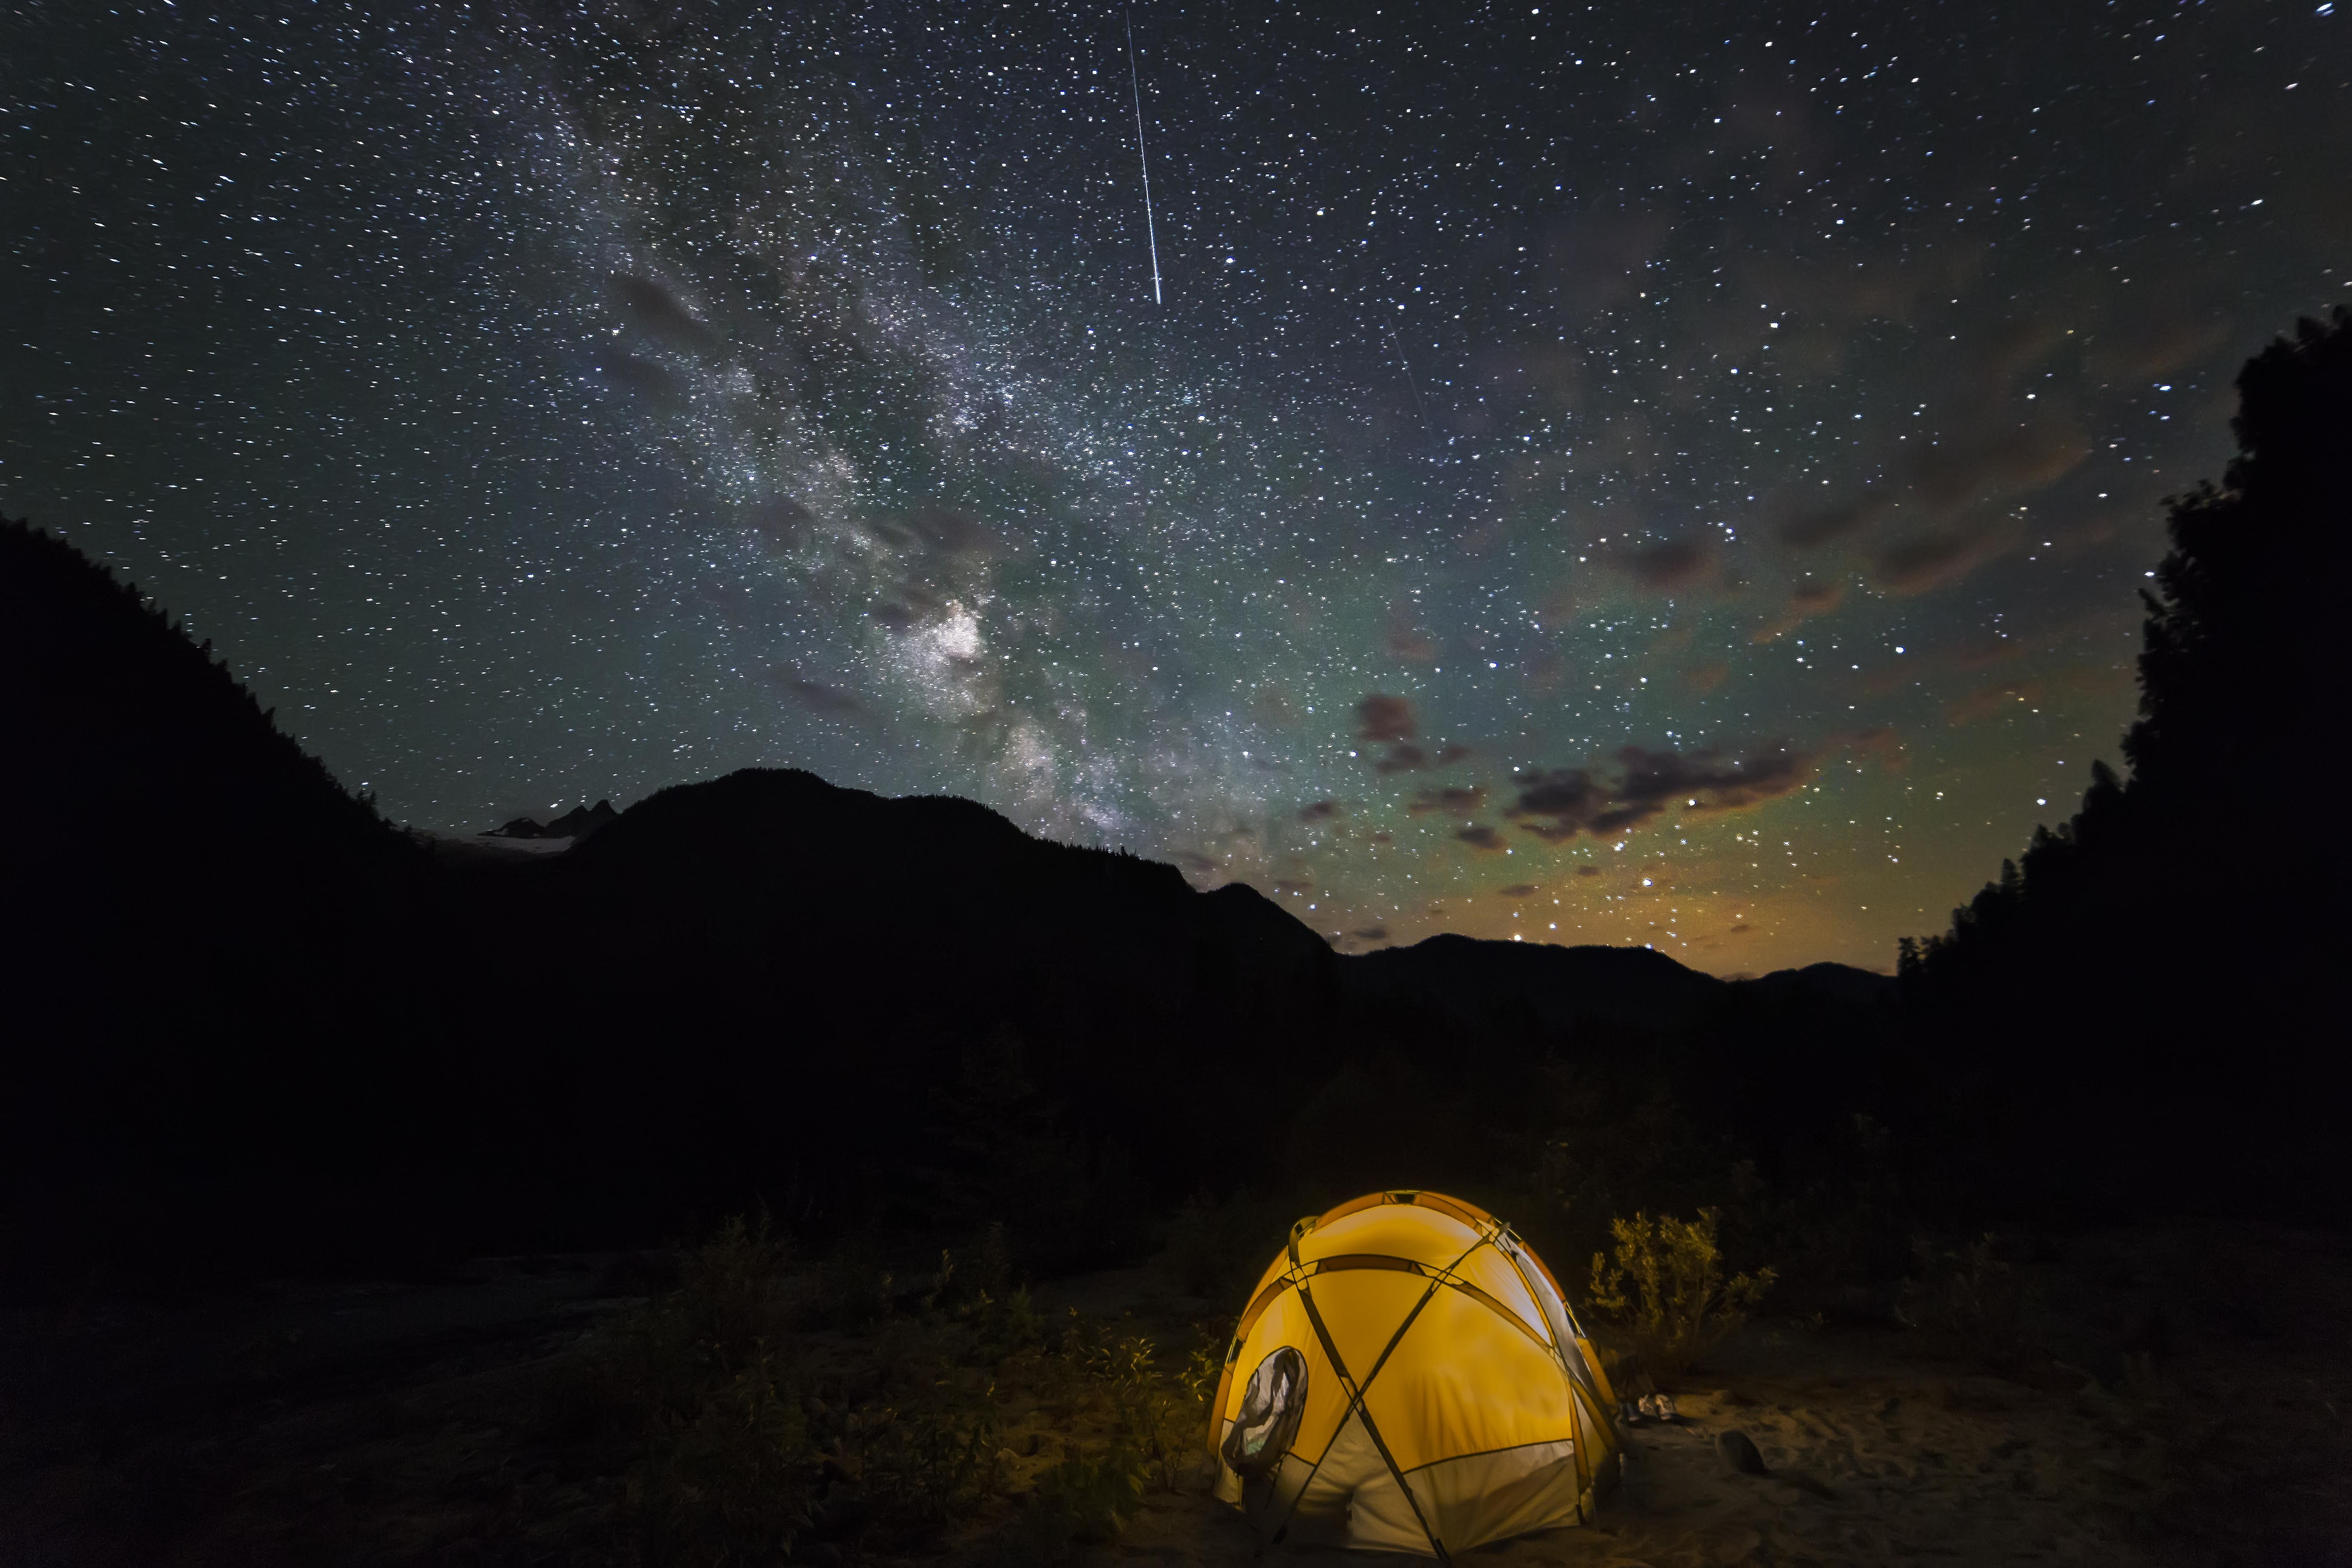 Milky Way and Shooting Star & Milky Way Northern Lights and a Cool Tent | North Western Images ...